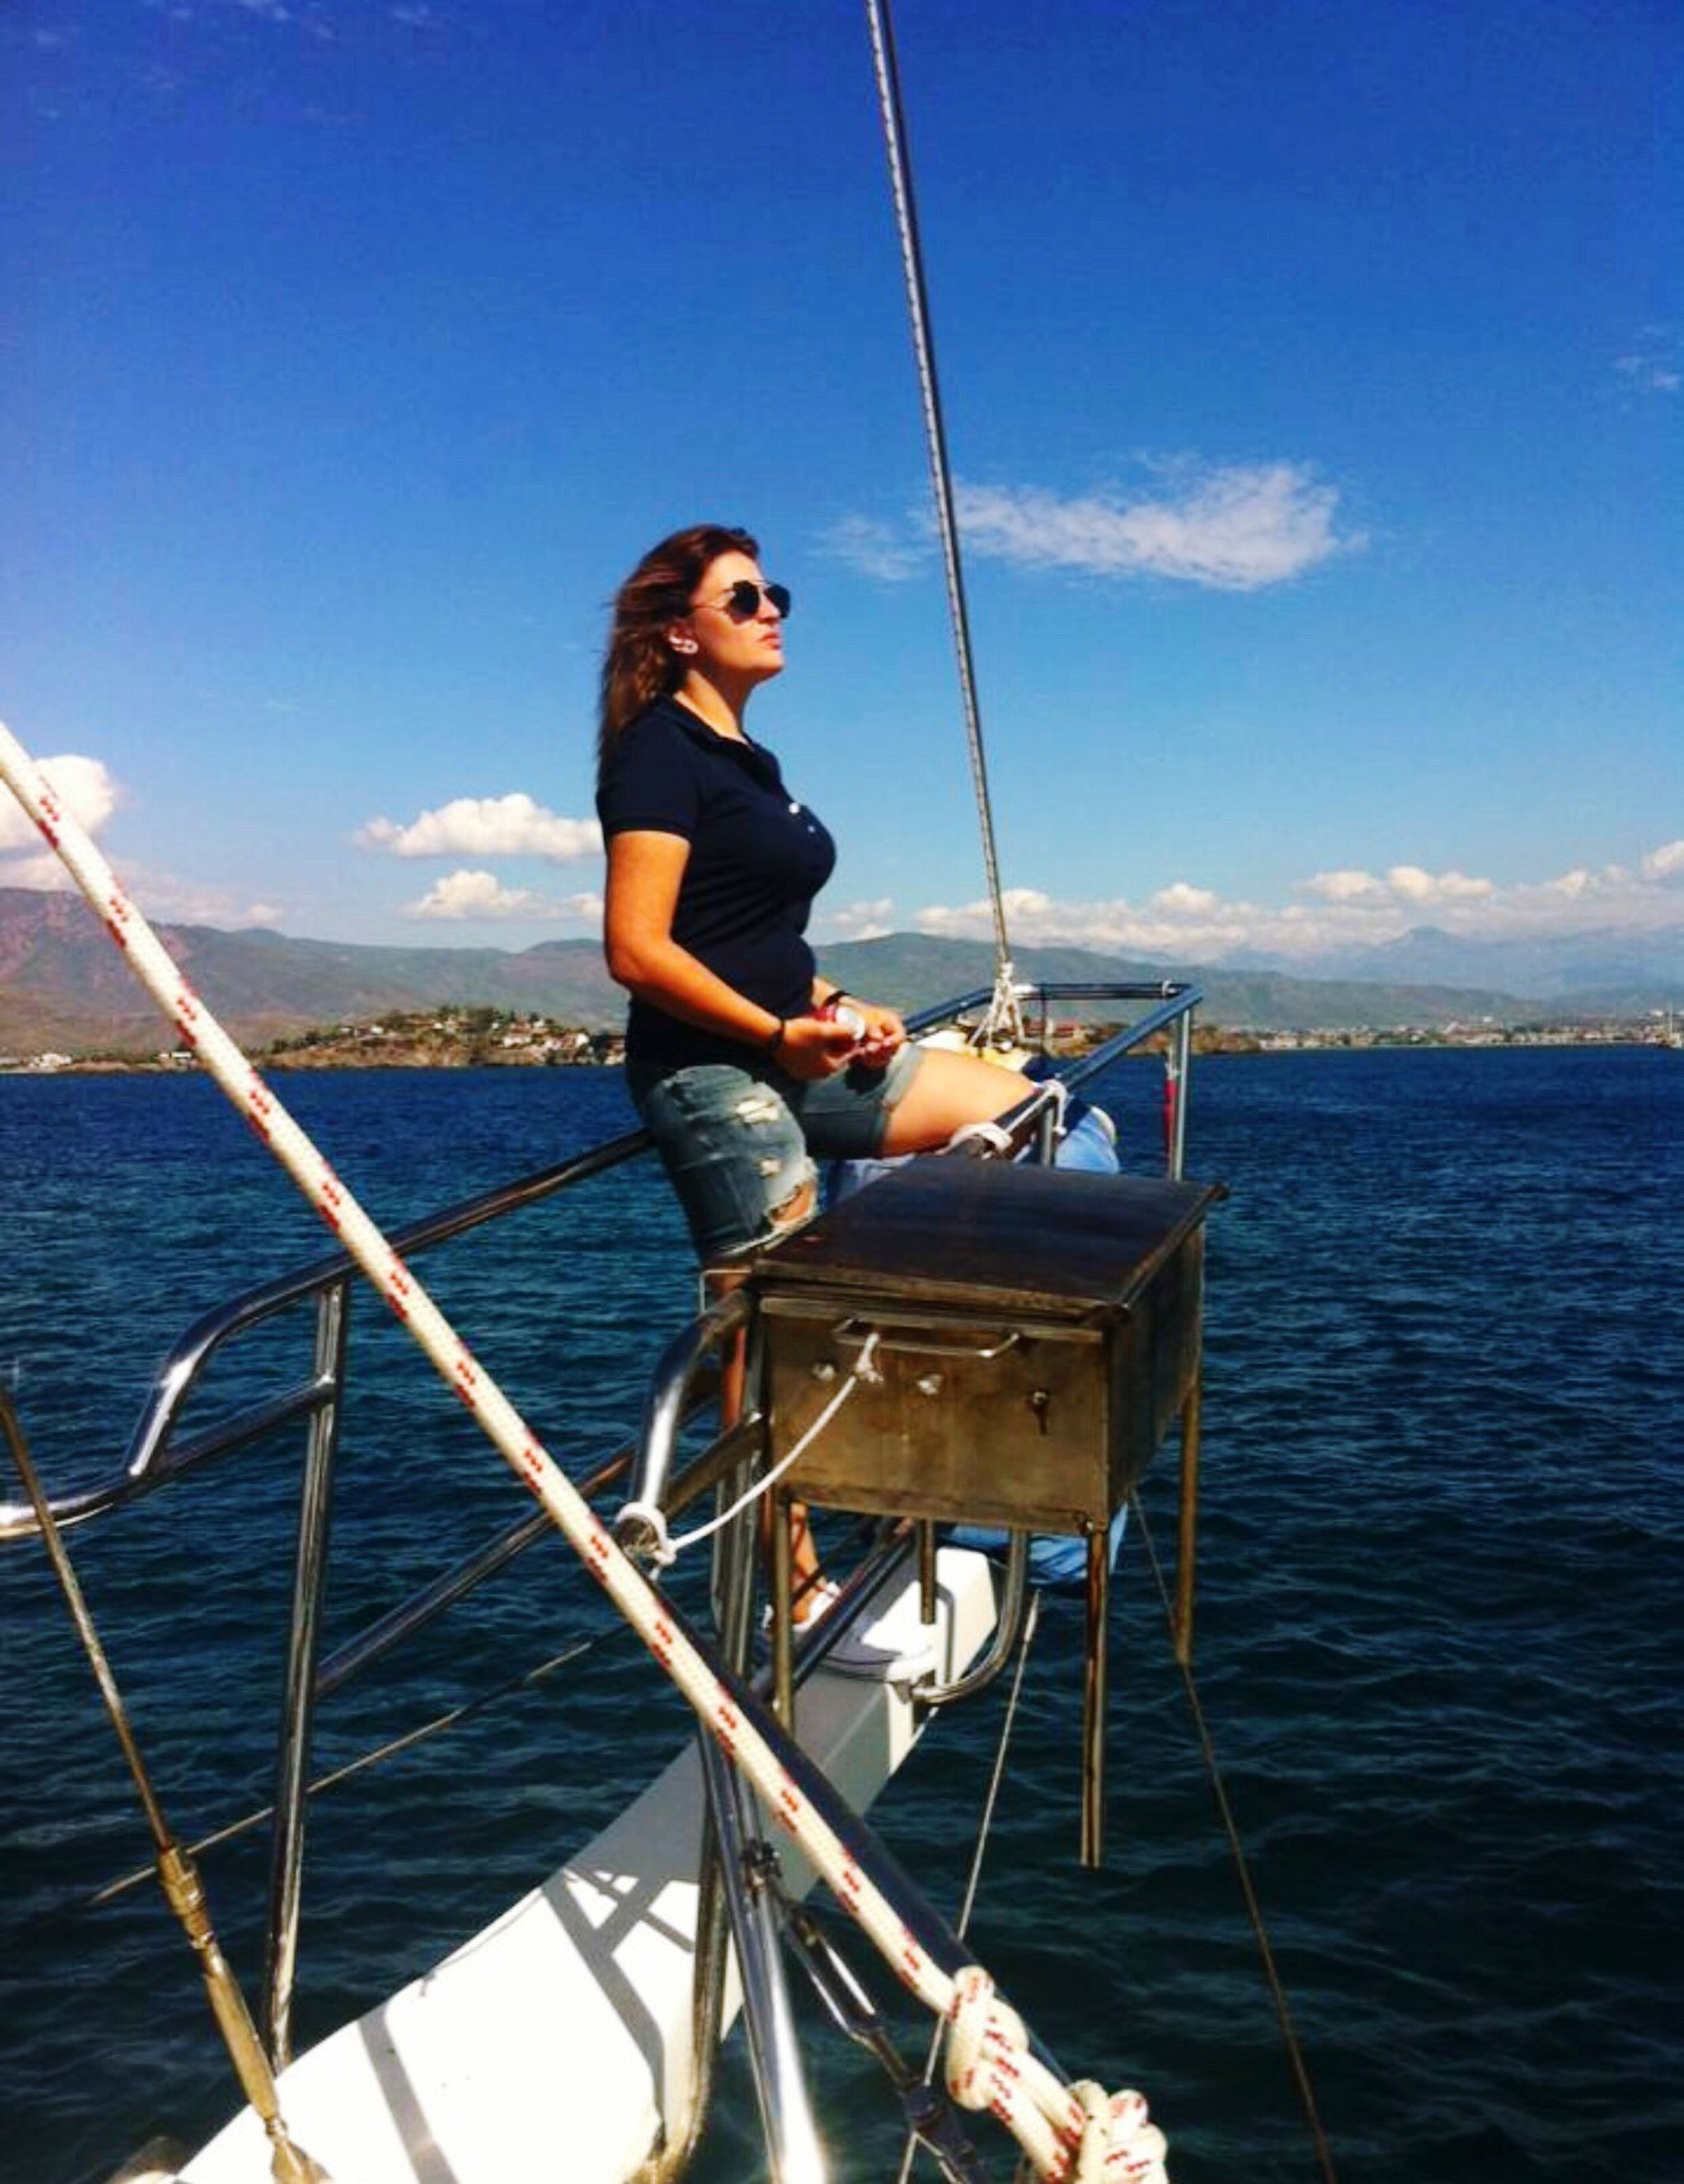 sea, water, nature, young adult, one person, sky, full length, horizon over water, sailing, young women, transportation, beauty in nature, nautical vessel, outdoors, real people, day, beautiful woman, fishing pole, people